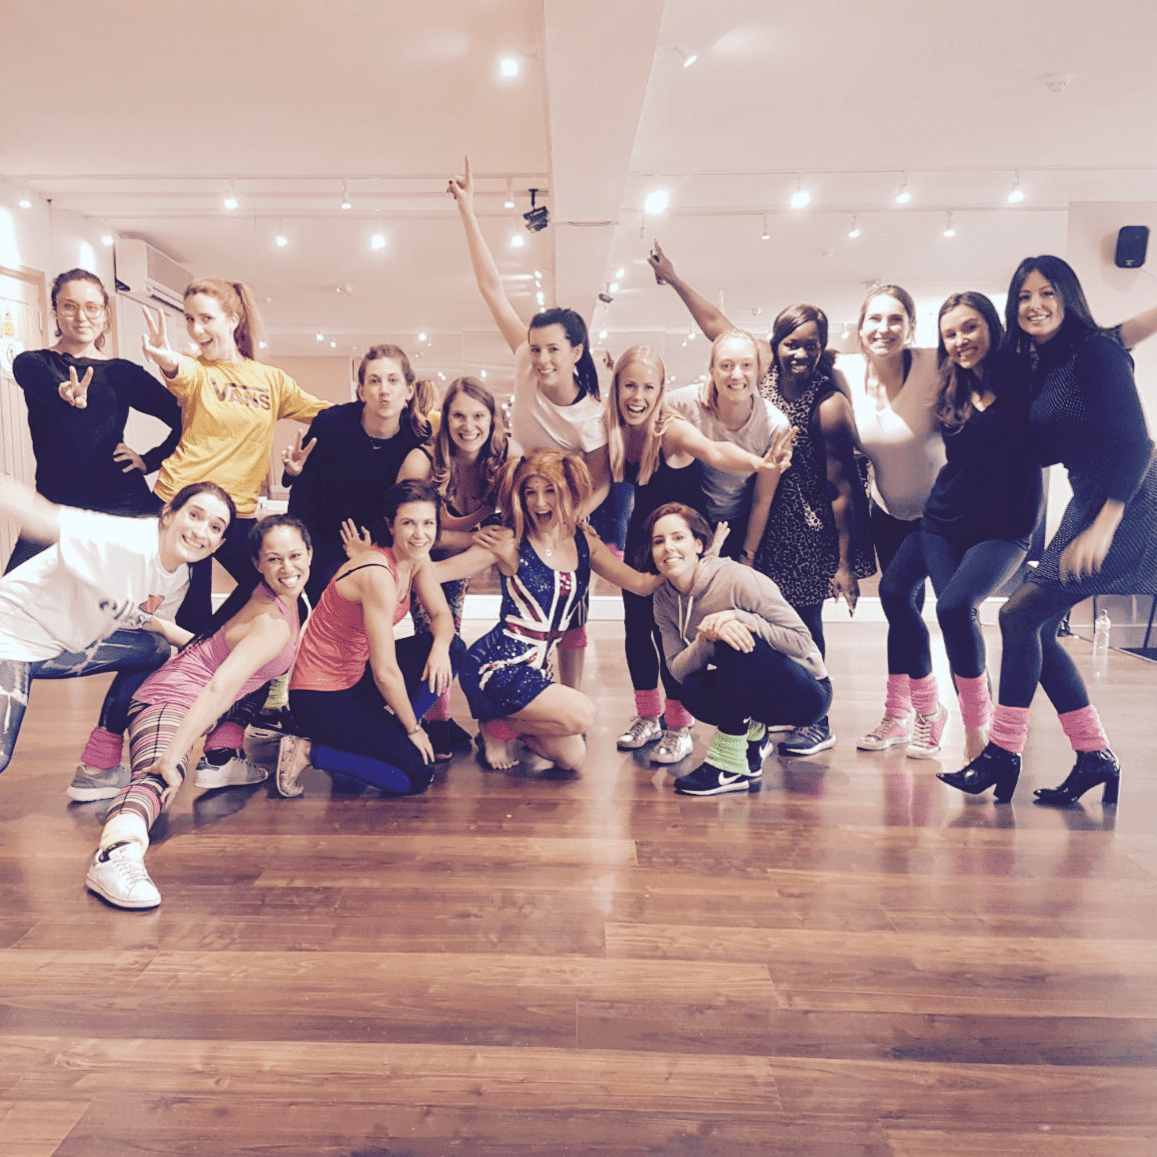 90's Hen party dance class, Dance Party Experience